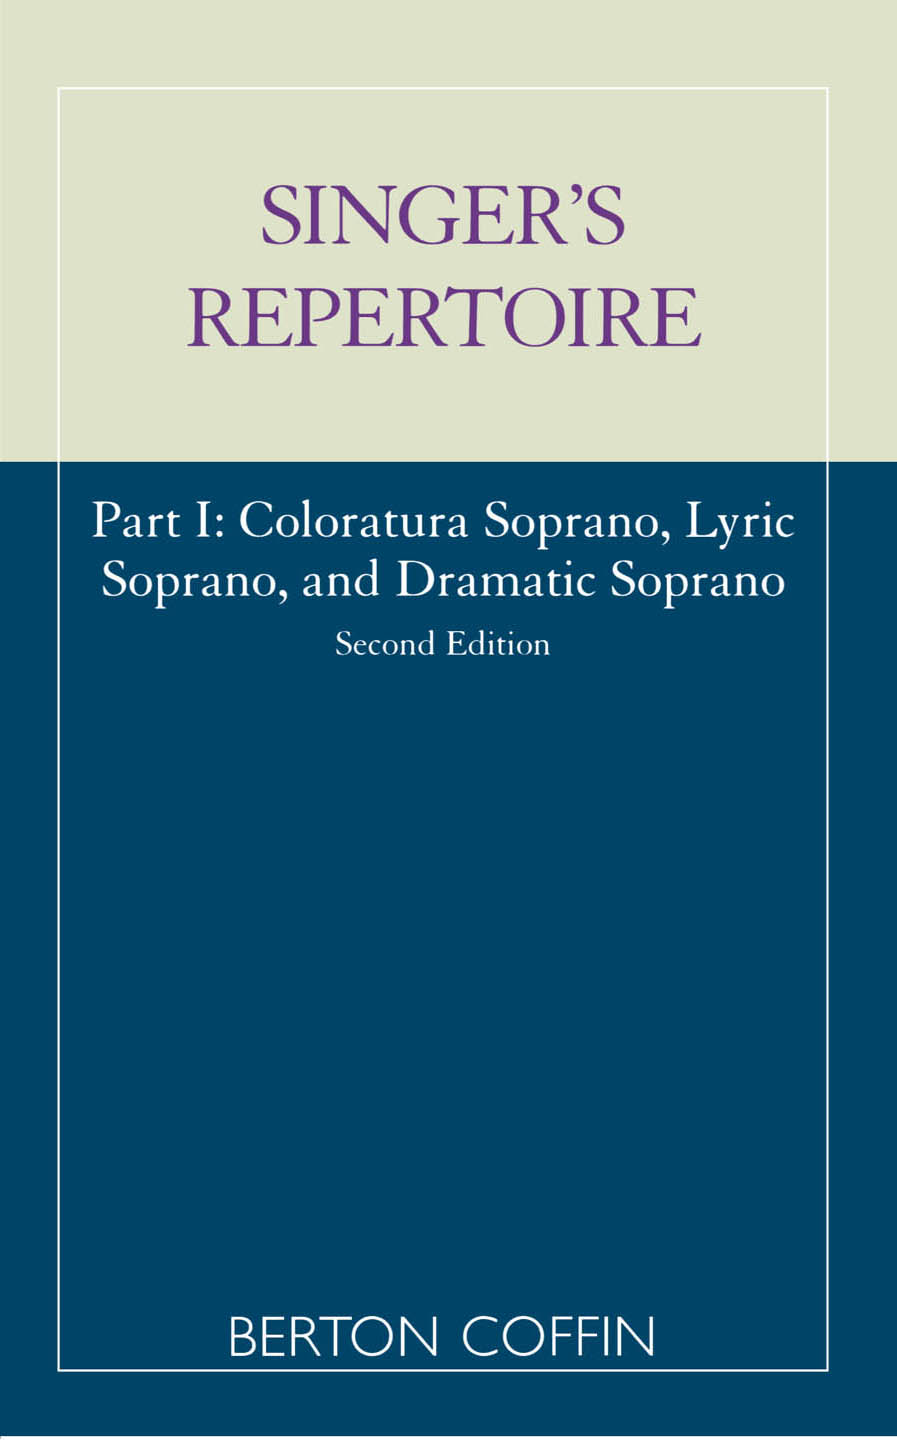 The Singer's Repertoire, Part I